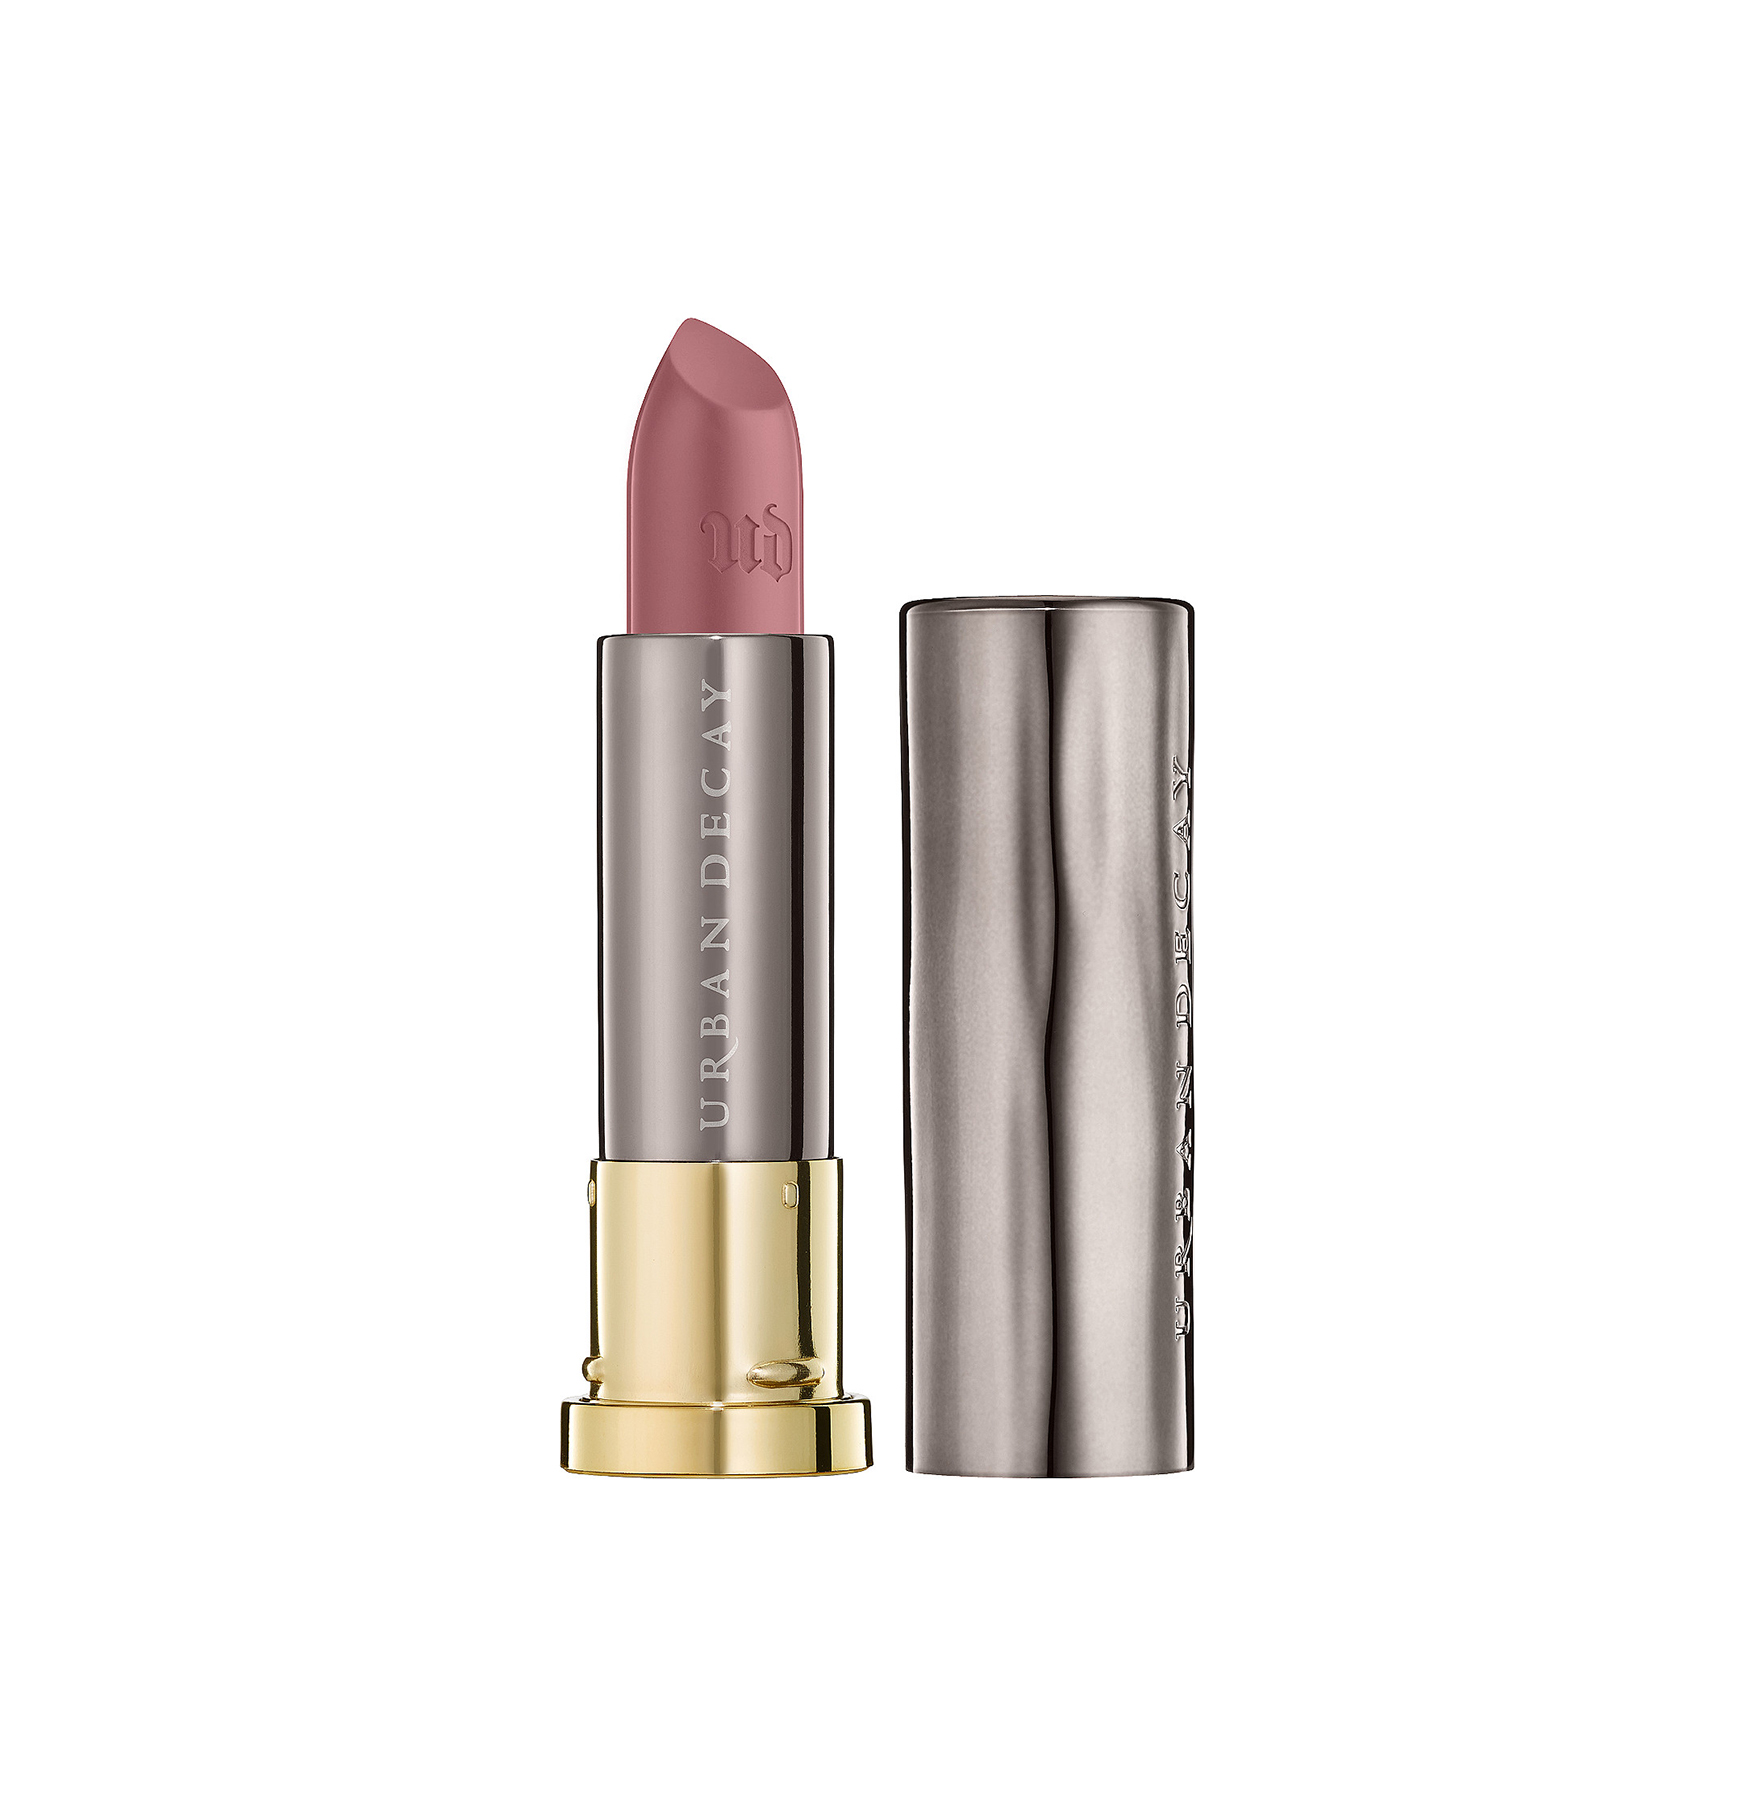 Mauve-Nude Lip: Urban Decay Vice Lipstick in Backtalk